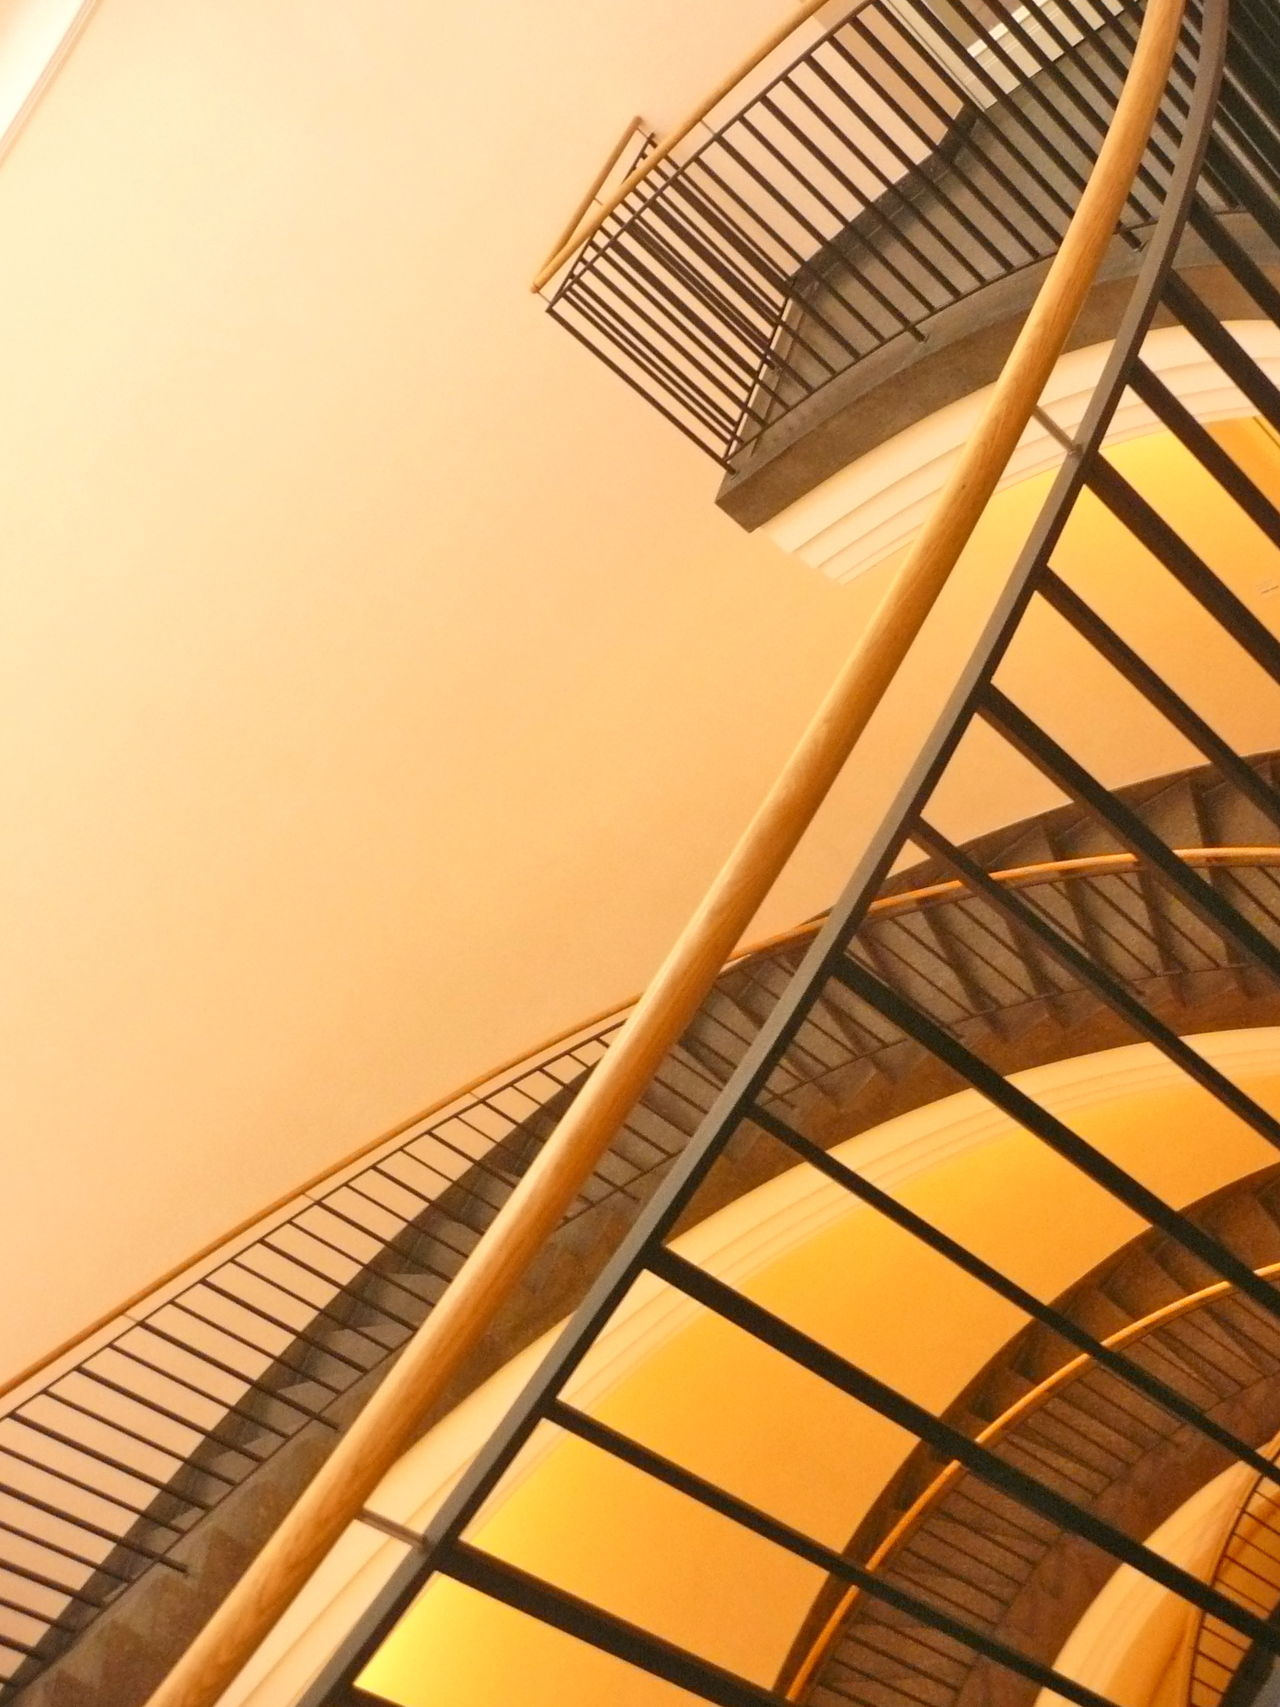 Architecture Railling Staircase The Architect - 2017 EyeEm Awards